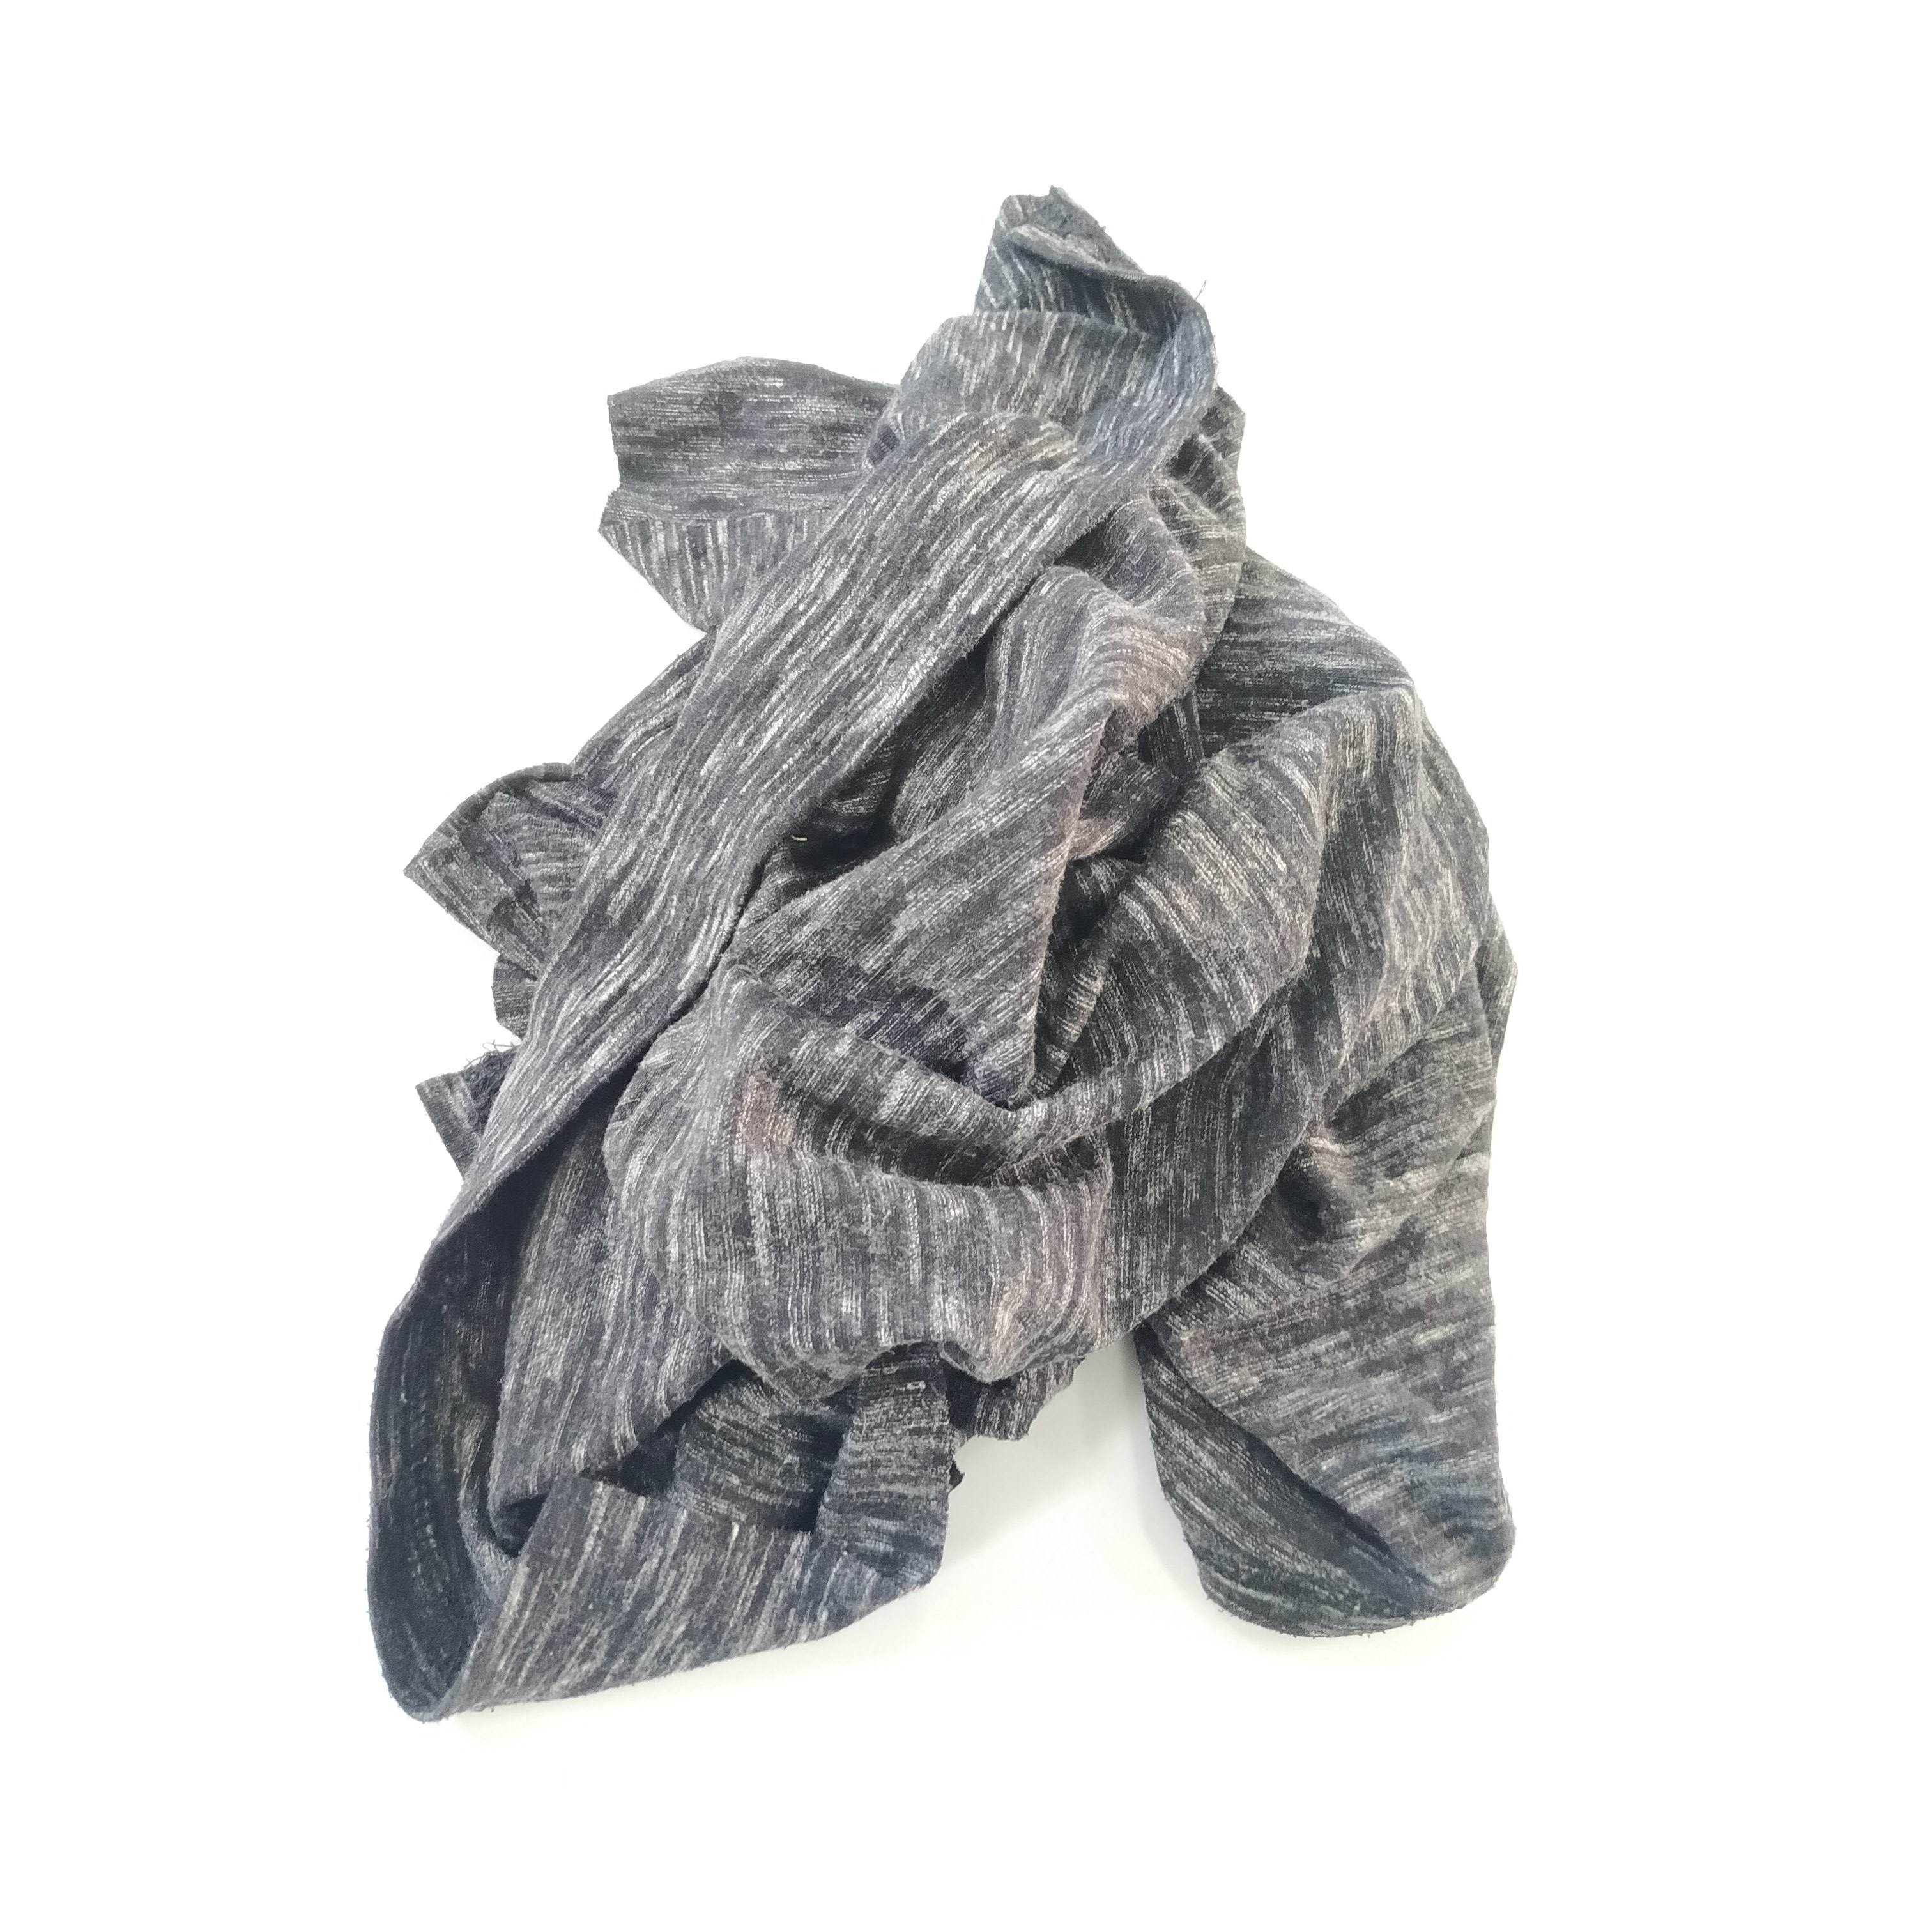 Disposable colored cotton rags Second-hand clothes dark 100% cotton T-shirt fabric waste waste cotton scraps